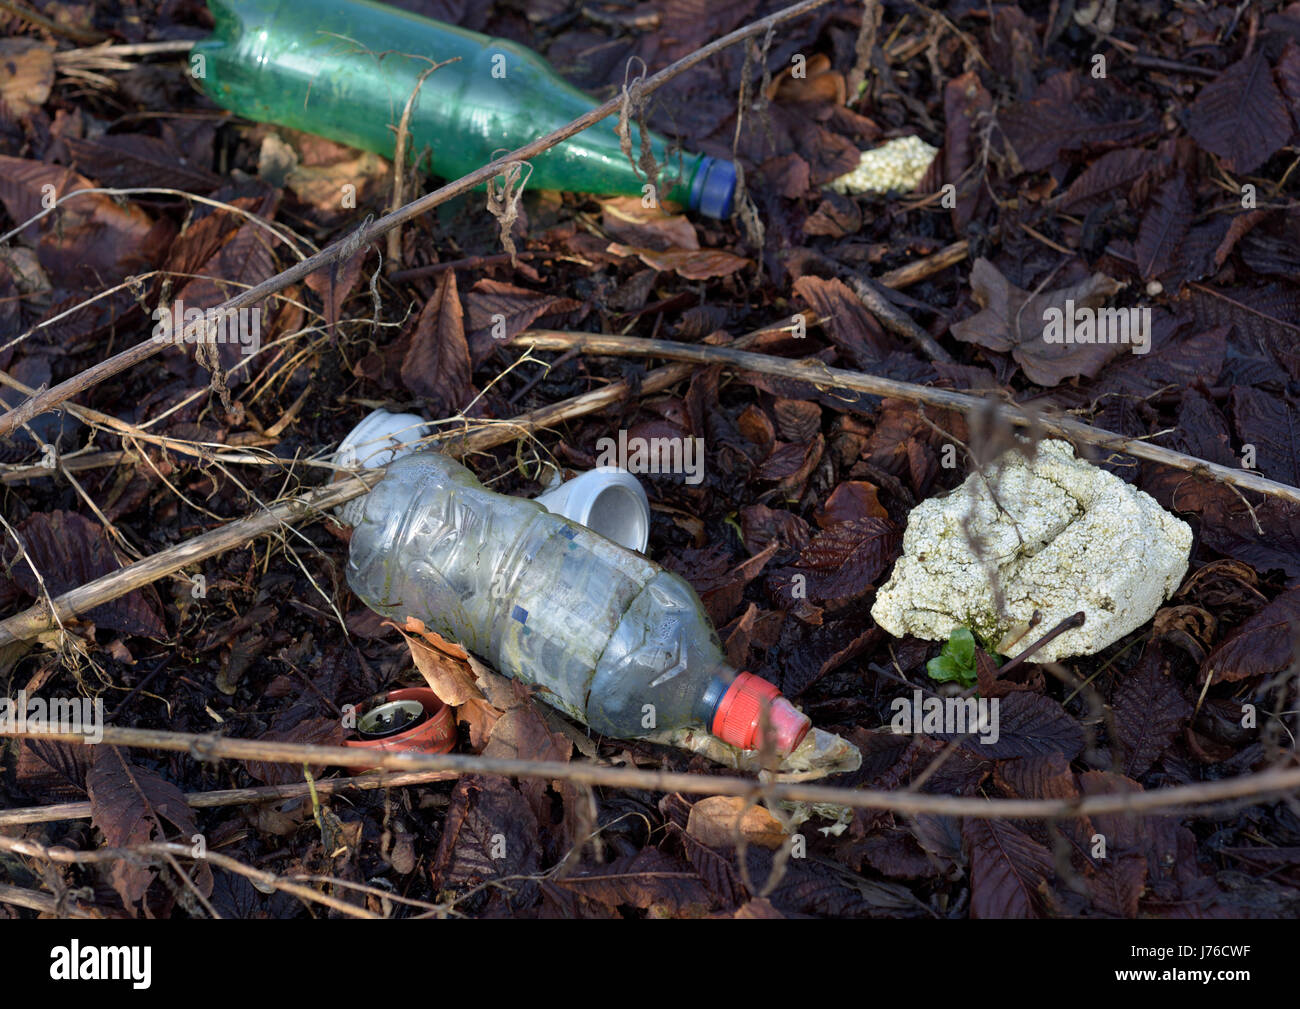 Plastic bottles and rubbish and polystyrene thrown away on rotting leaves - Stock Image